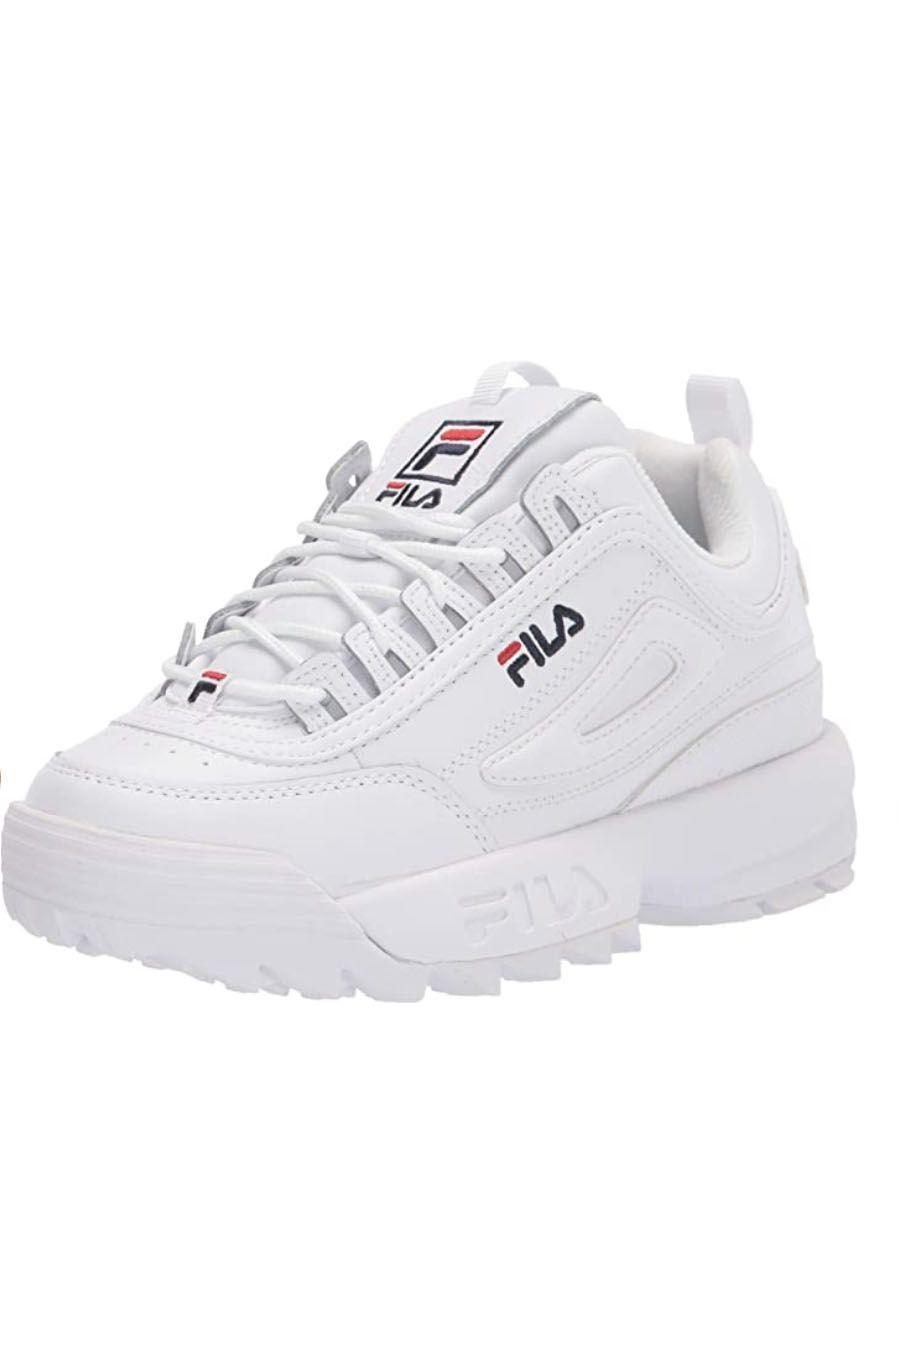 """<p><strong>Fila</strong></p><p>amazon.com</p><p><strong>$58.98</strong></p><p><a href=""""https://www.amazon.com/dp/B0744194FY?tag=syn-yahoo-20&ascsubtag=%5Bartid%7C10049.g.36746335%5Bsrc%7Cyahoo-us"""" rel=""""nofollow noopener"""" target=""""_blank"""" data-ylk=""""slk:Shop Now"""" class=""""link rapid-noclick-resp"""">Shop Now</a></p><p>Are you a TikTok girl? Then you need these Fila platform sneakers to complete the look. Platform sneakers have been on the rise the past few years, so you can get in on the trend with this classic pair. </p>"""